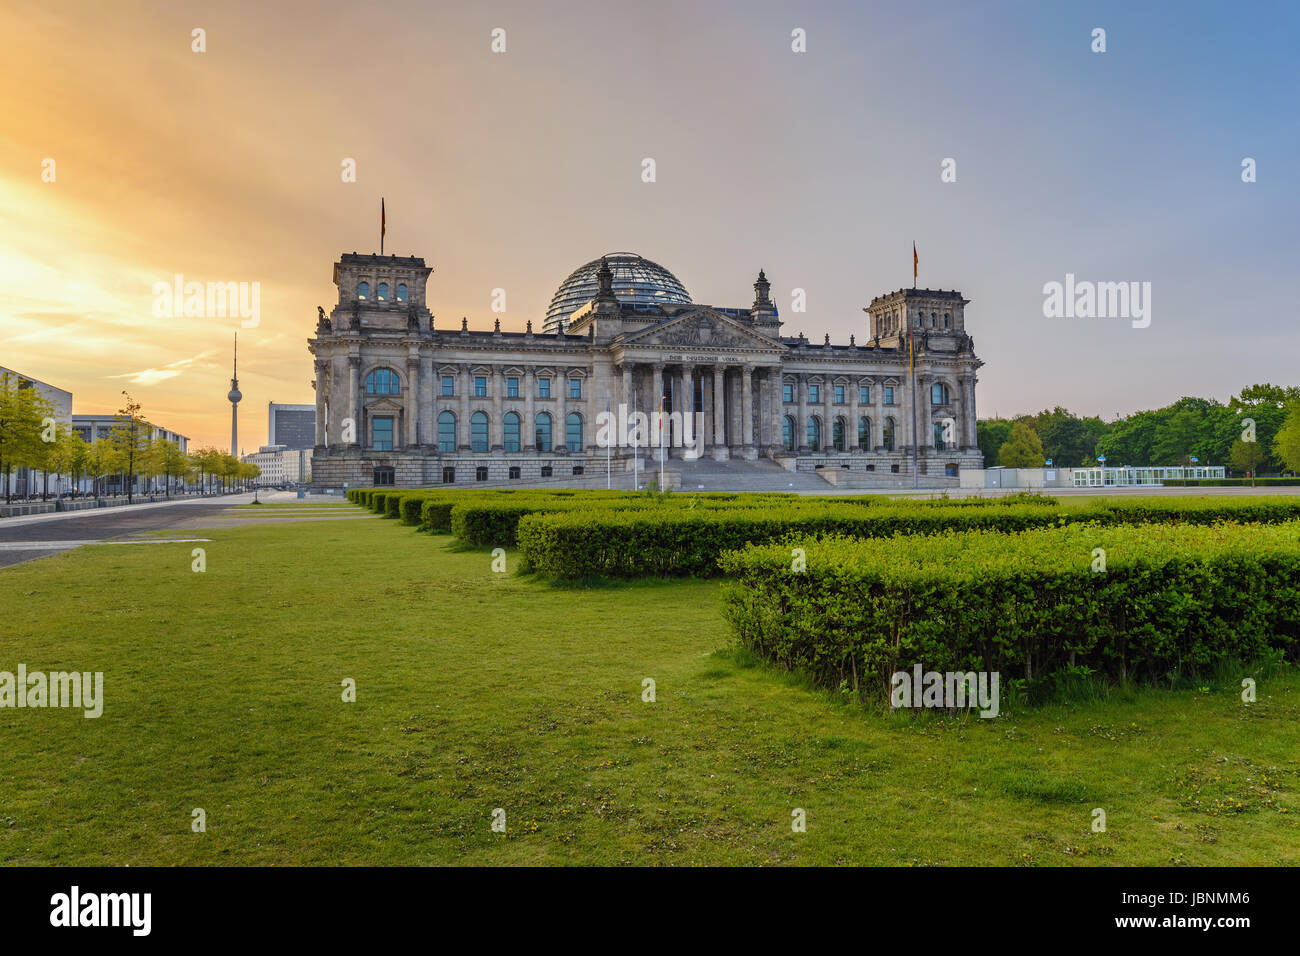 Berlin Reichstag (German parliament building) when sunrise, Berlin, Germany - Stock Image